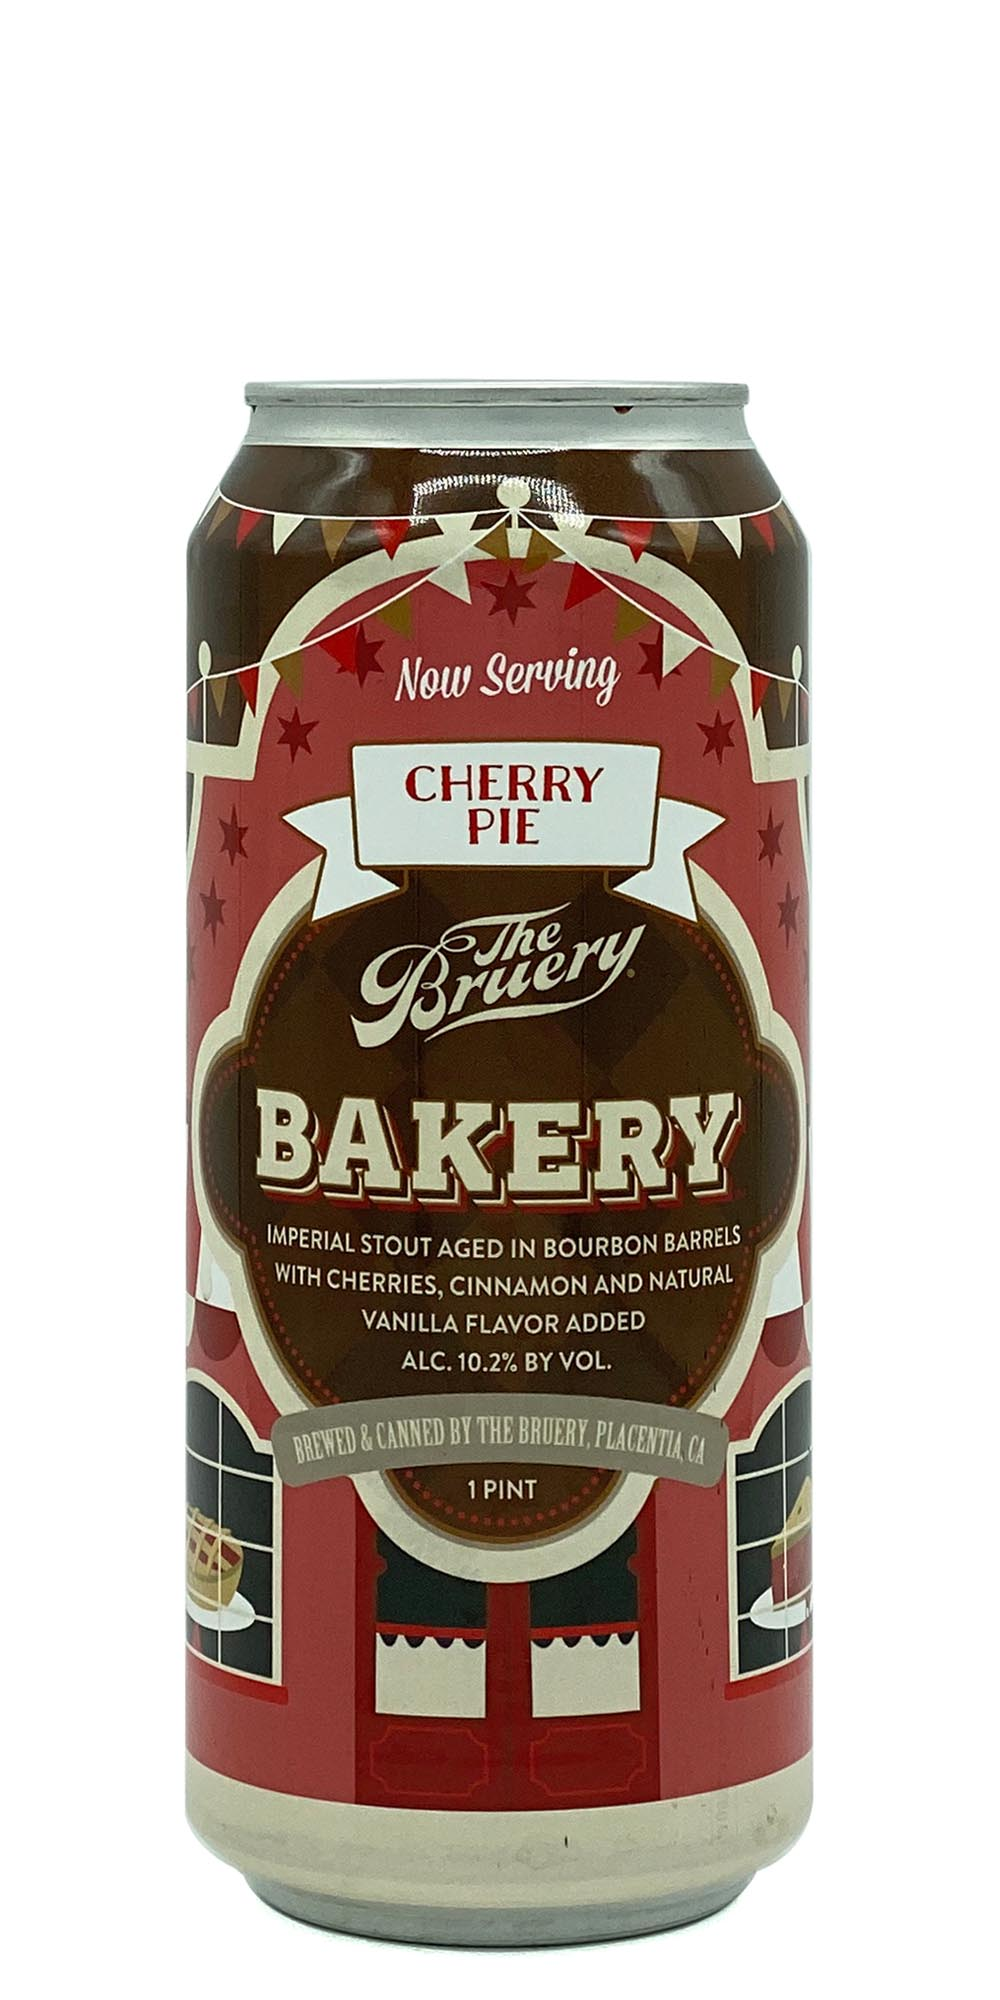 The Bruery - Bakery: Cherry Pie - Drikbeer - Order Craft Beer Online